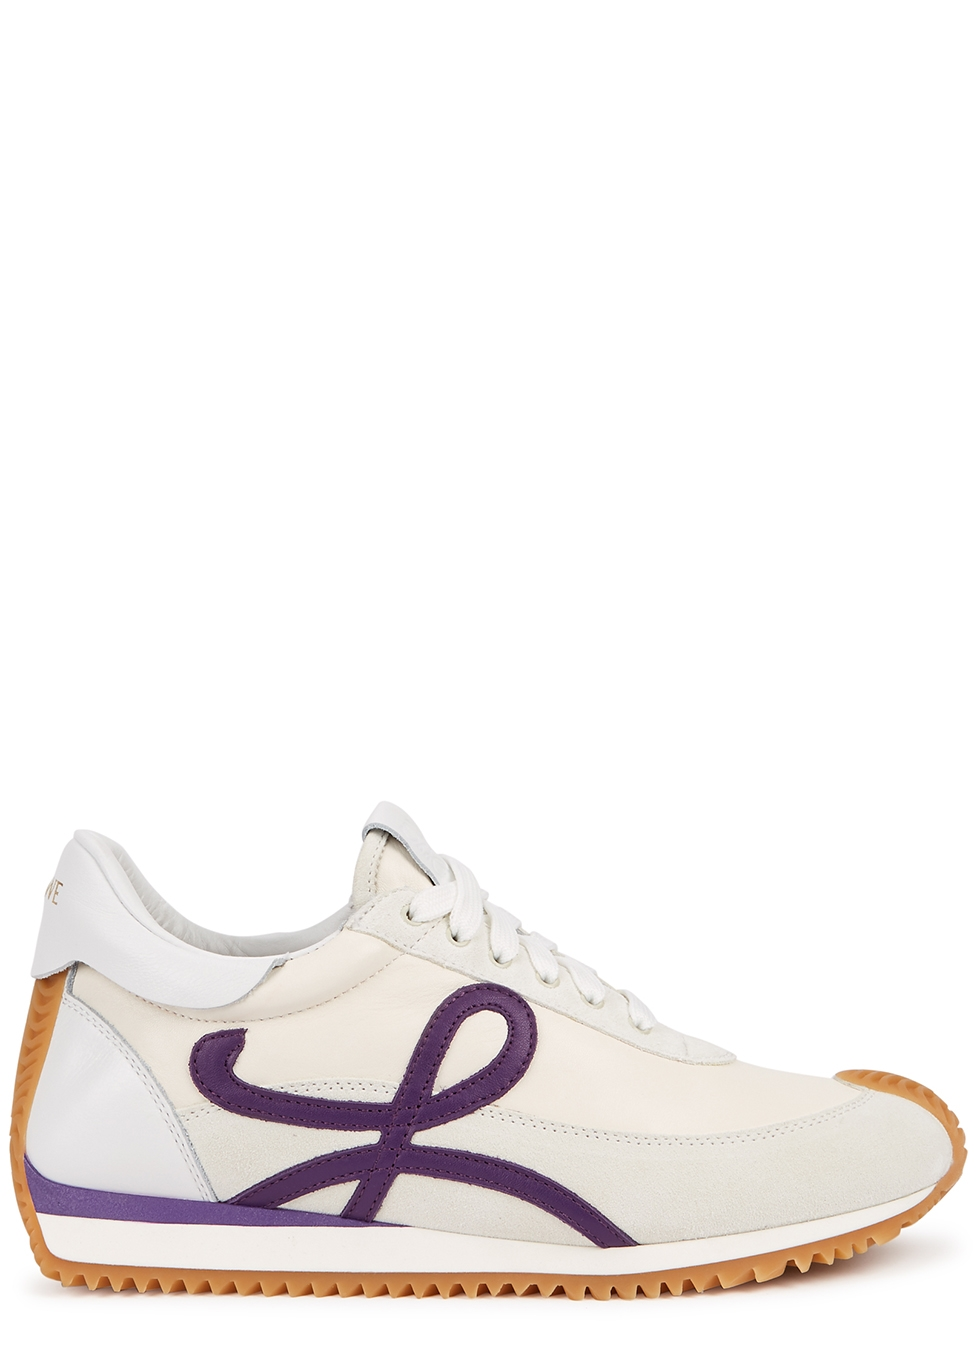 Flow Runner panelled leather sneakers